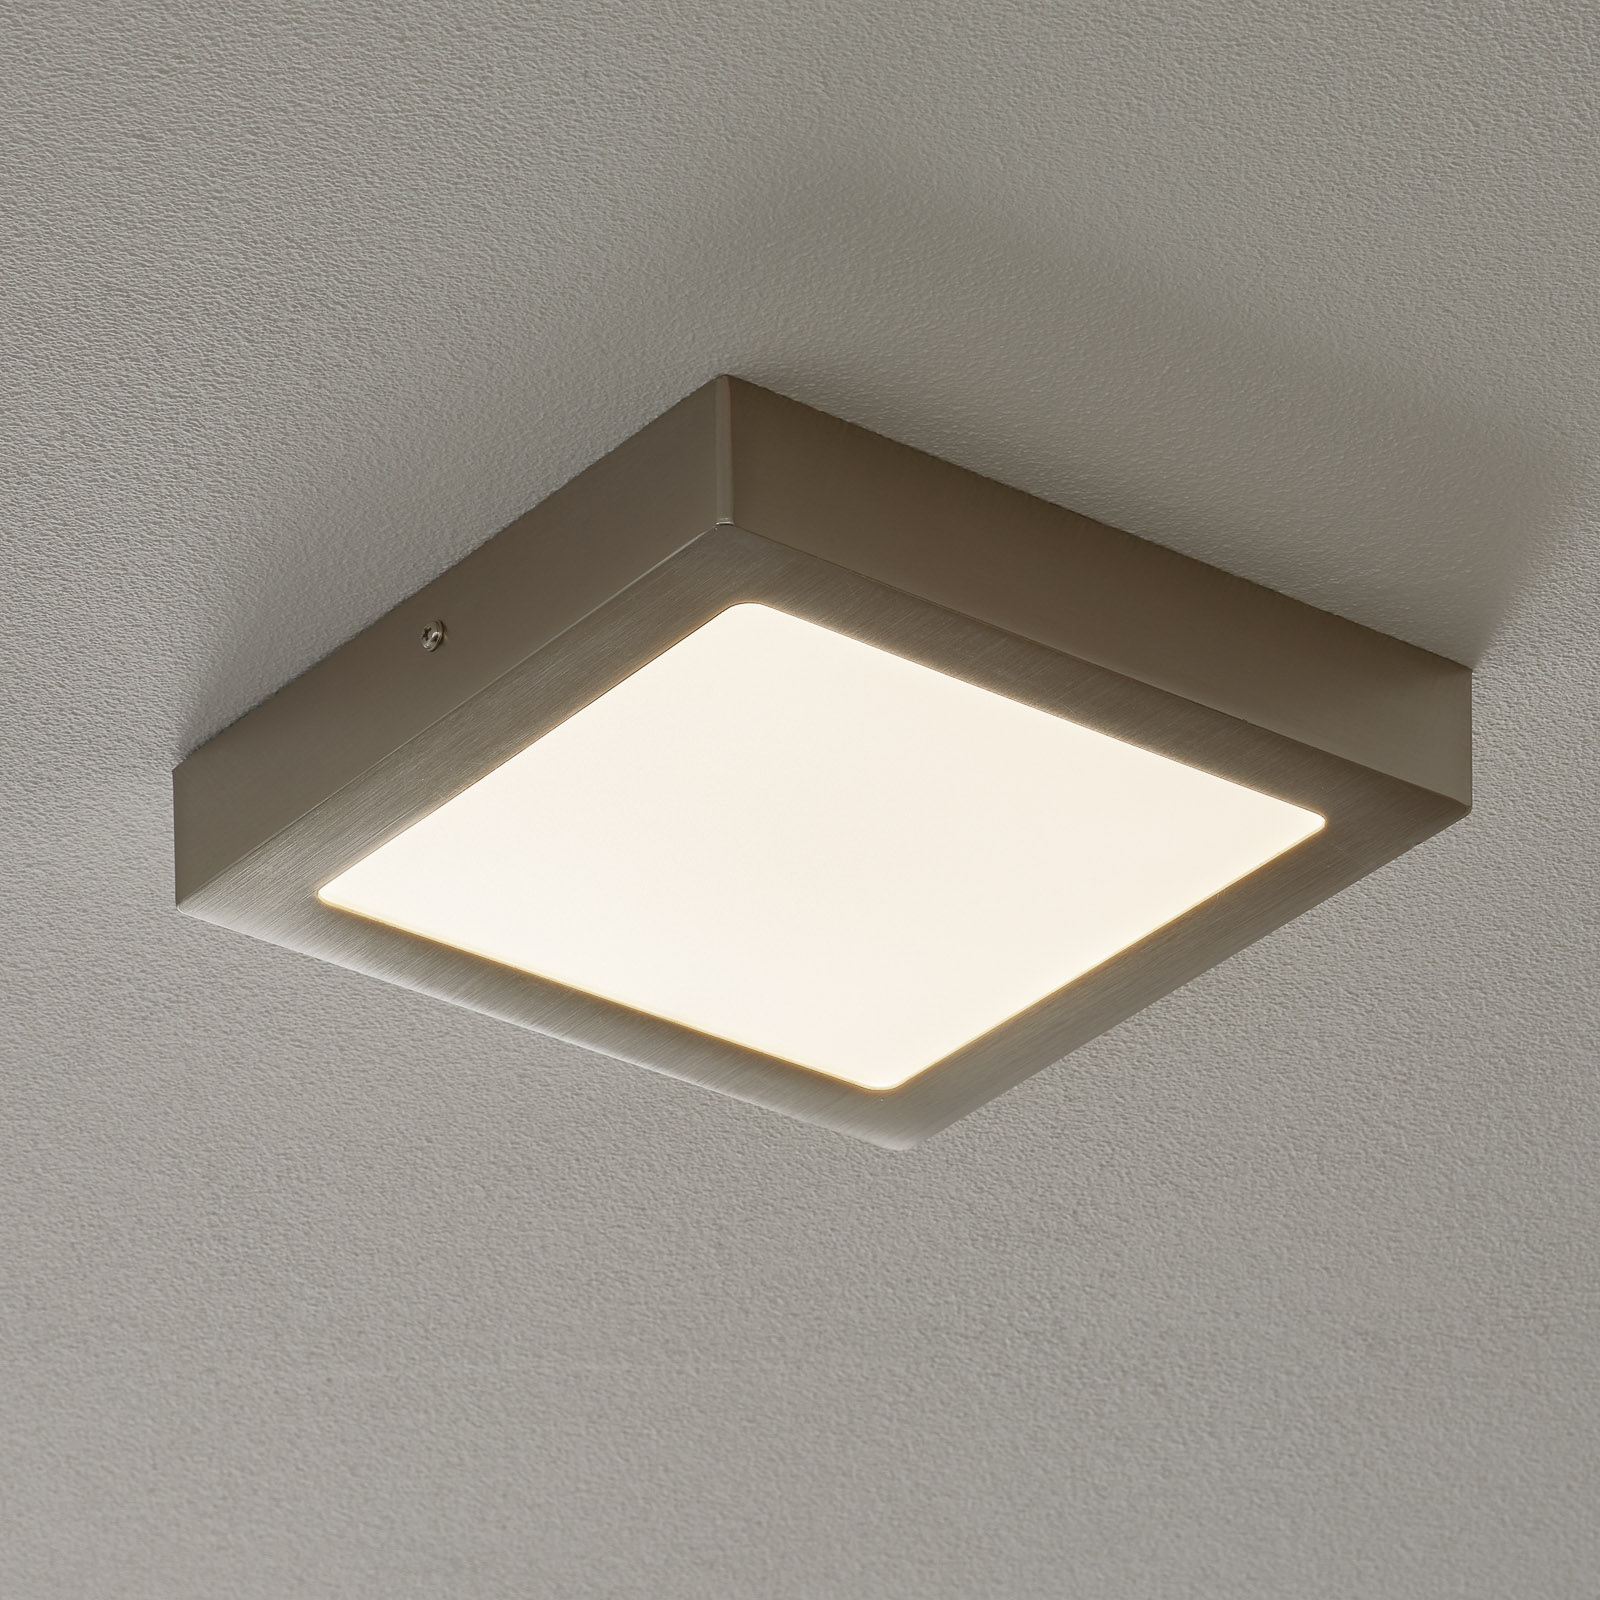 Lampa sufitowa LED Fueva-Connect 22,5 cm, nikiel